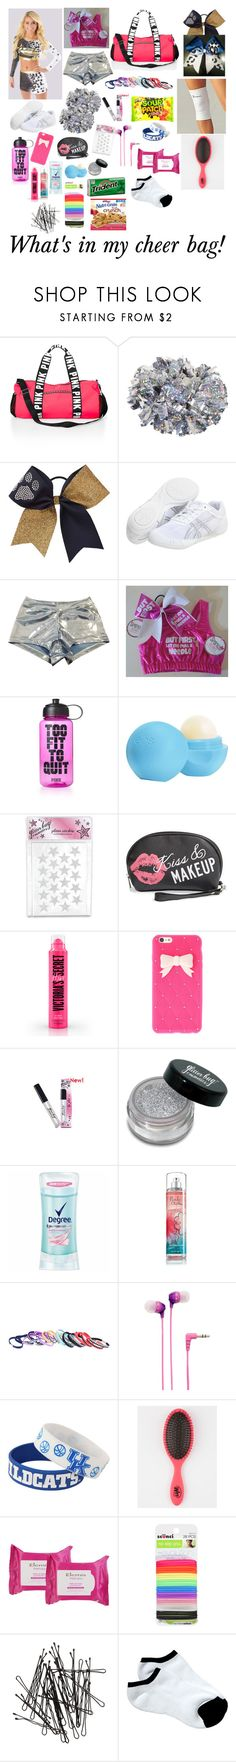 """What's in my cheer bag"" by kittylovecute ? liked on Polyvore featuring Asics, Victoria's Secret PINK, Eos, Amici Accessories, Fantasia, Sony, Forever Collectibles, Elemis, scunci and H&M"